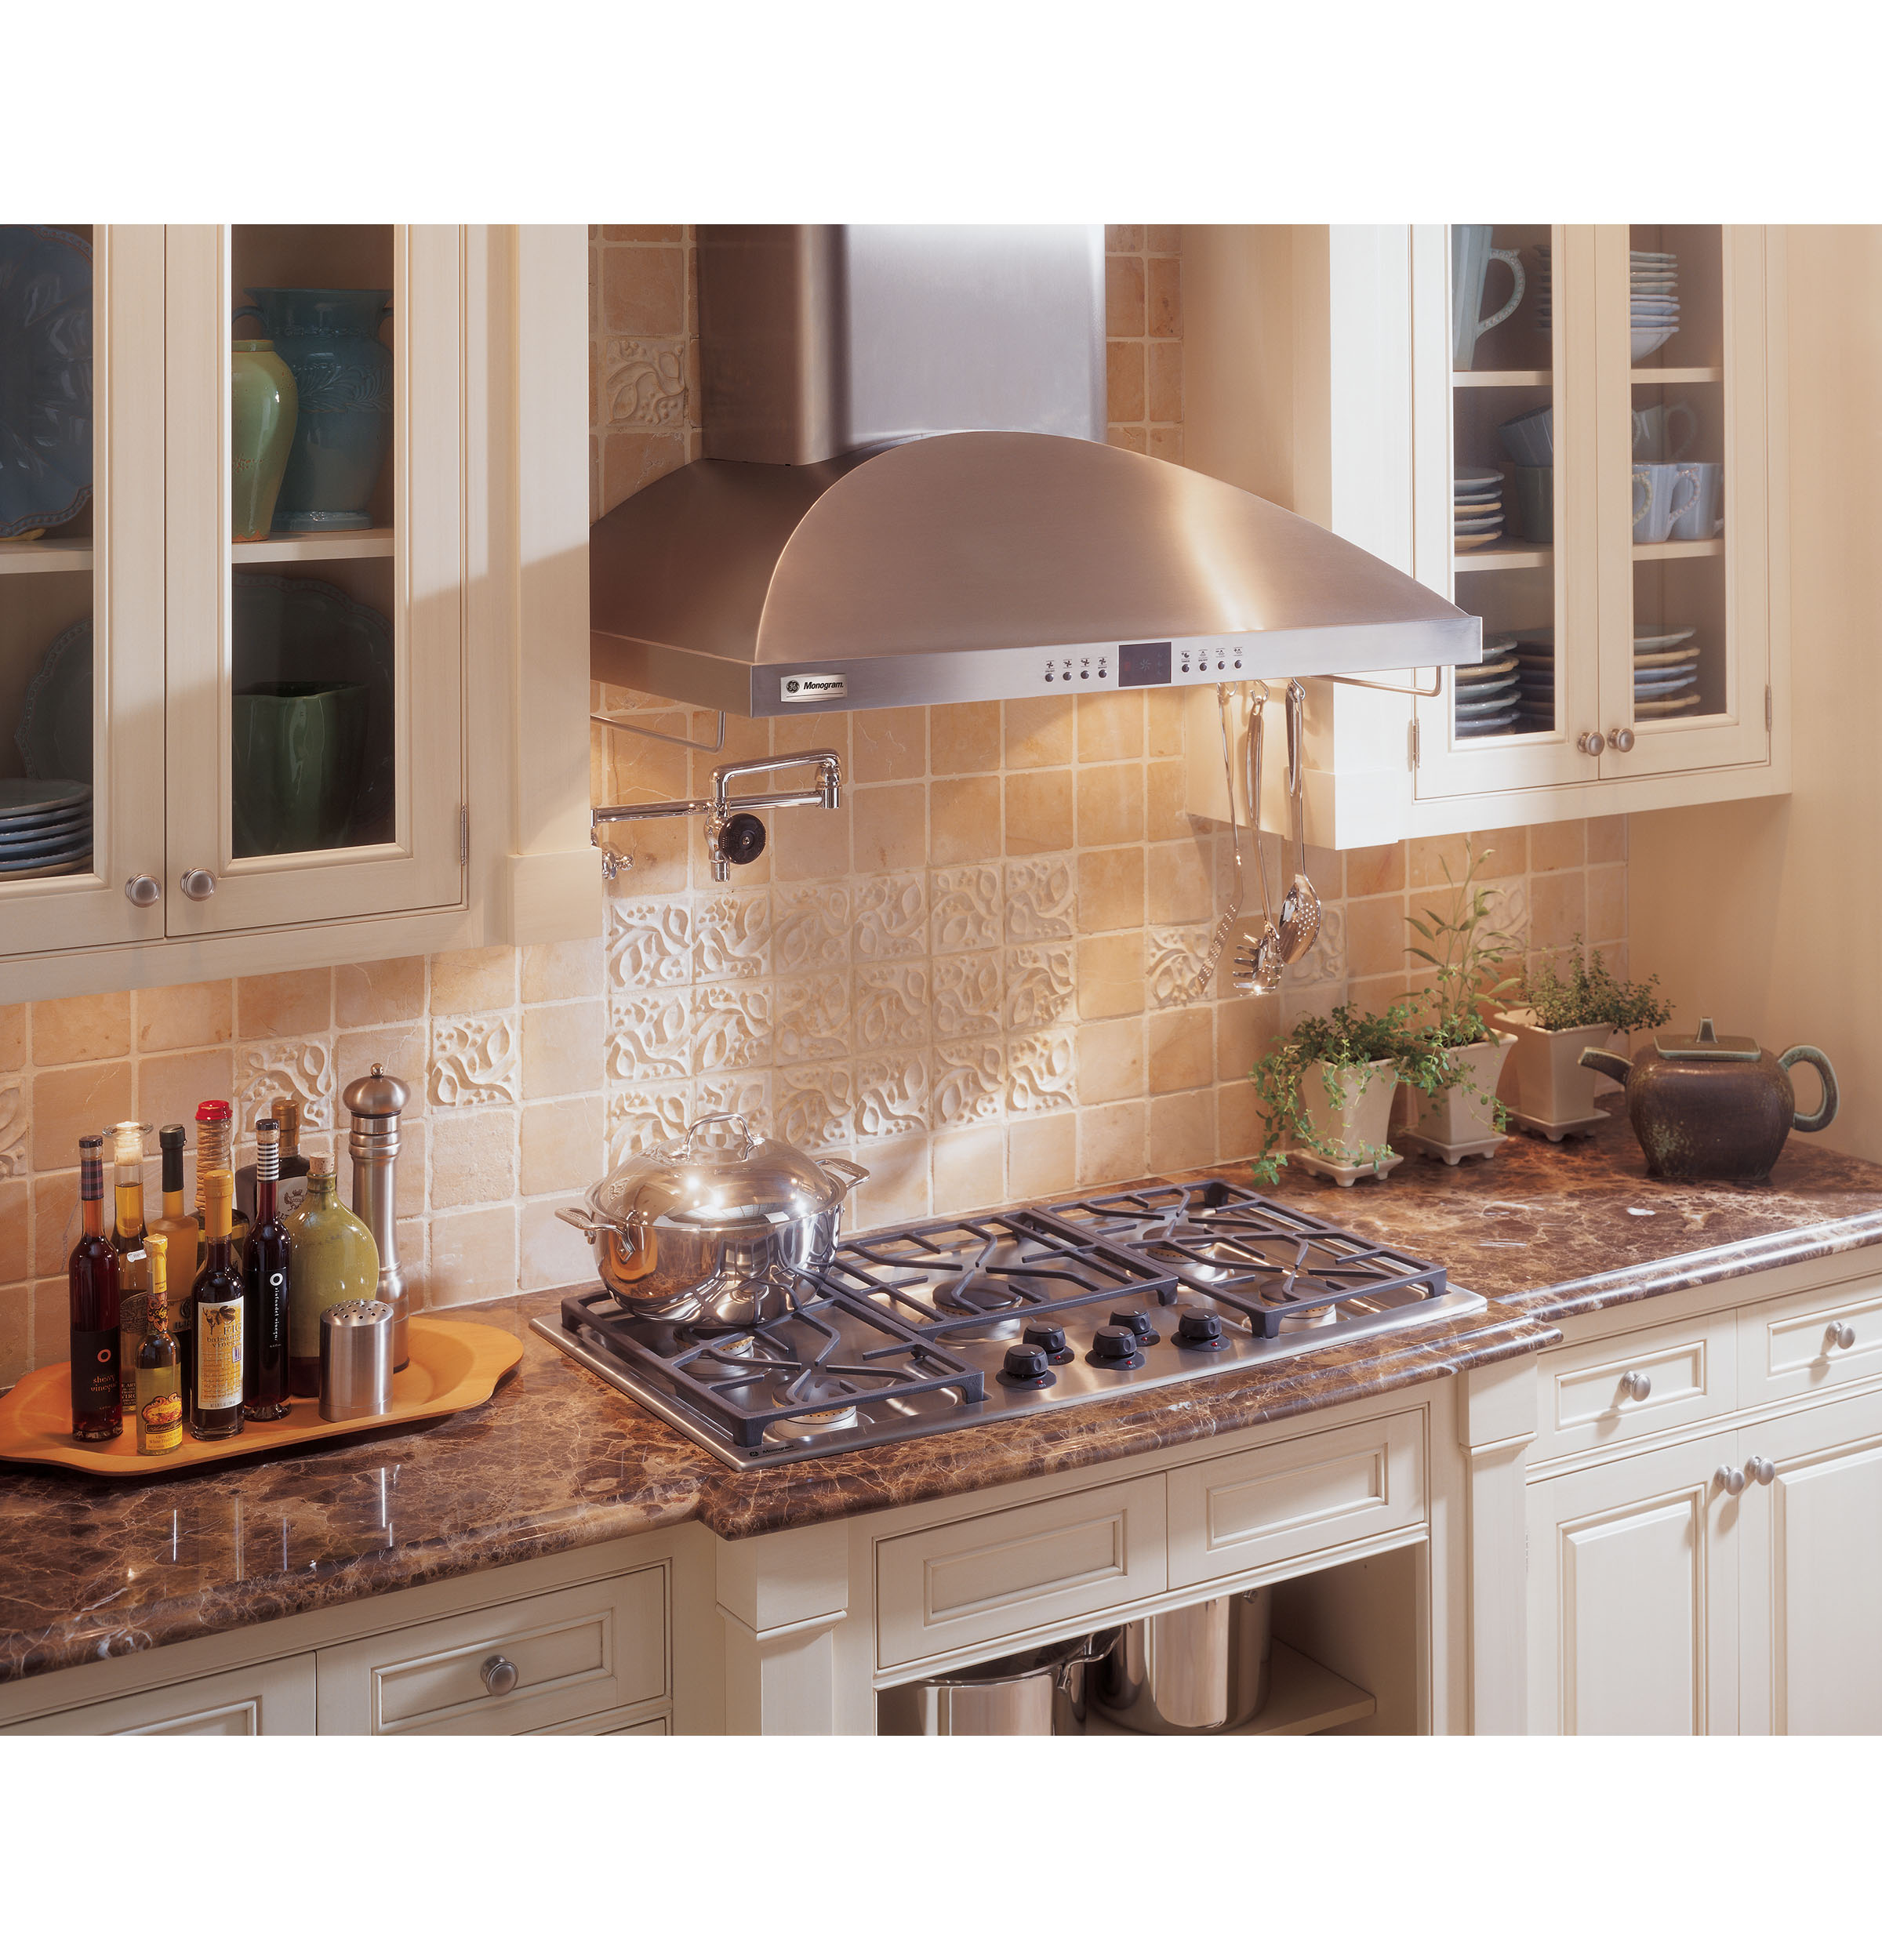 Kitchen Stove Vent Monogram 36 Wall Mounted Vent Hood Zv950sdss Ge Appliances